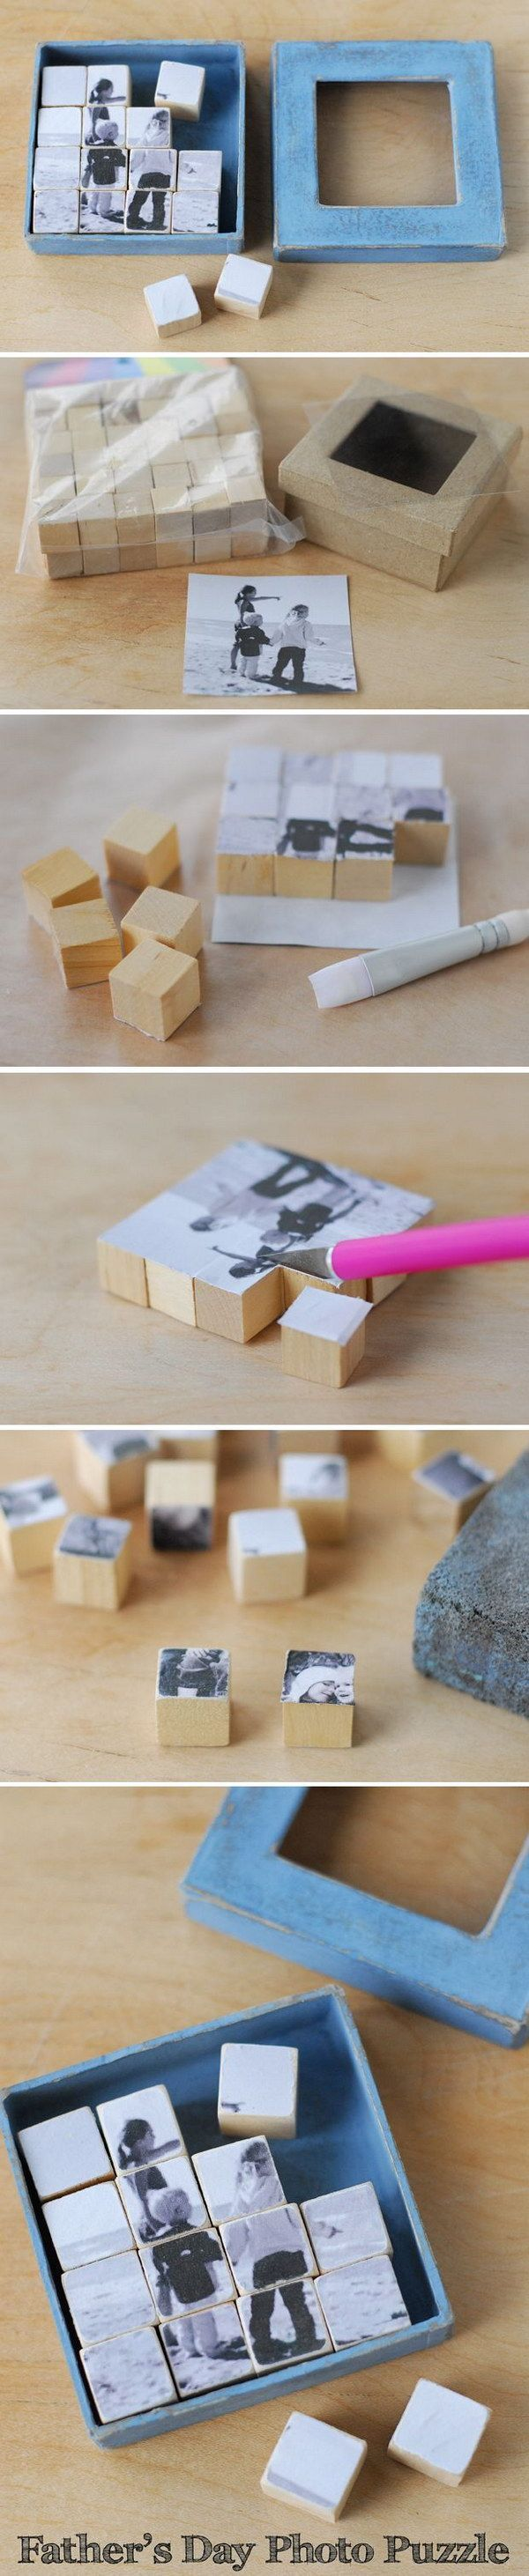 Photo Puzzle Block Gift. These photo puzzle blocks make great visual reminder of the one you love. Cool Father's Day gift ideas.